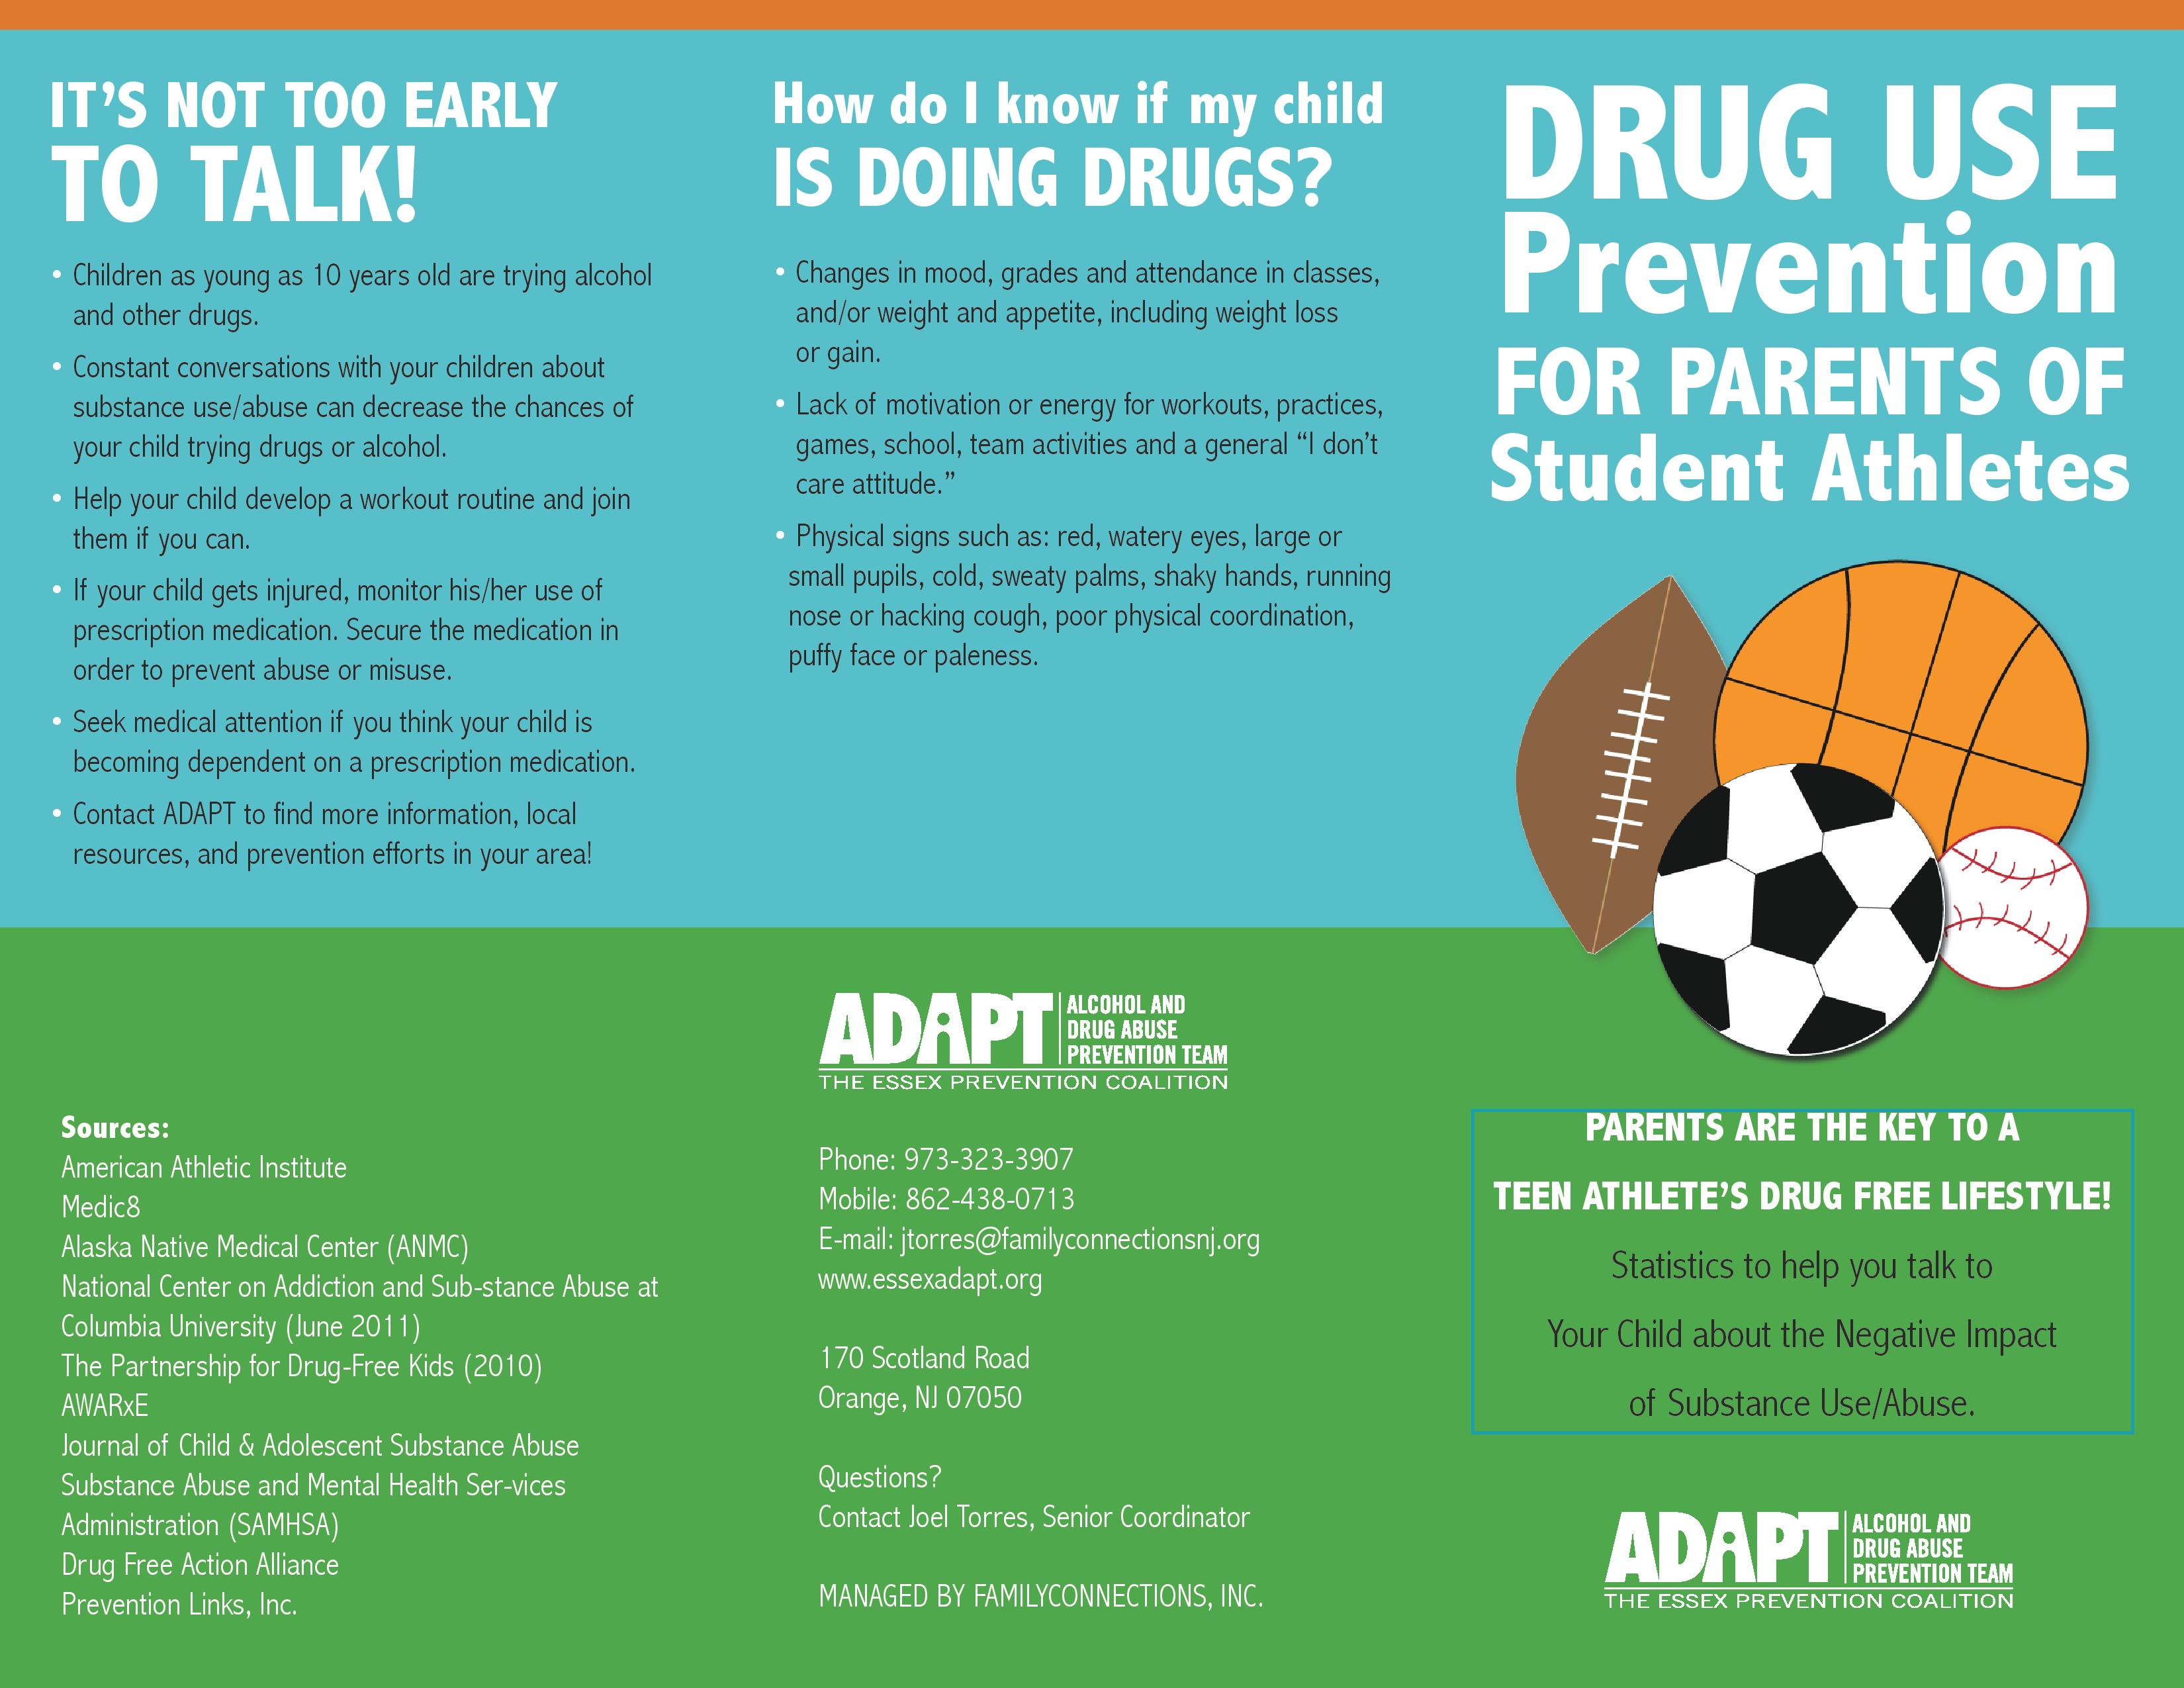 Tips for Parents of Student Athletes | ADAPT